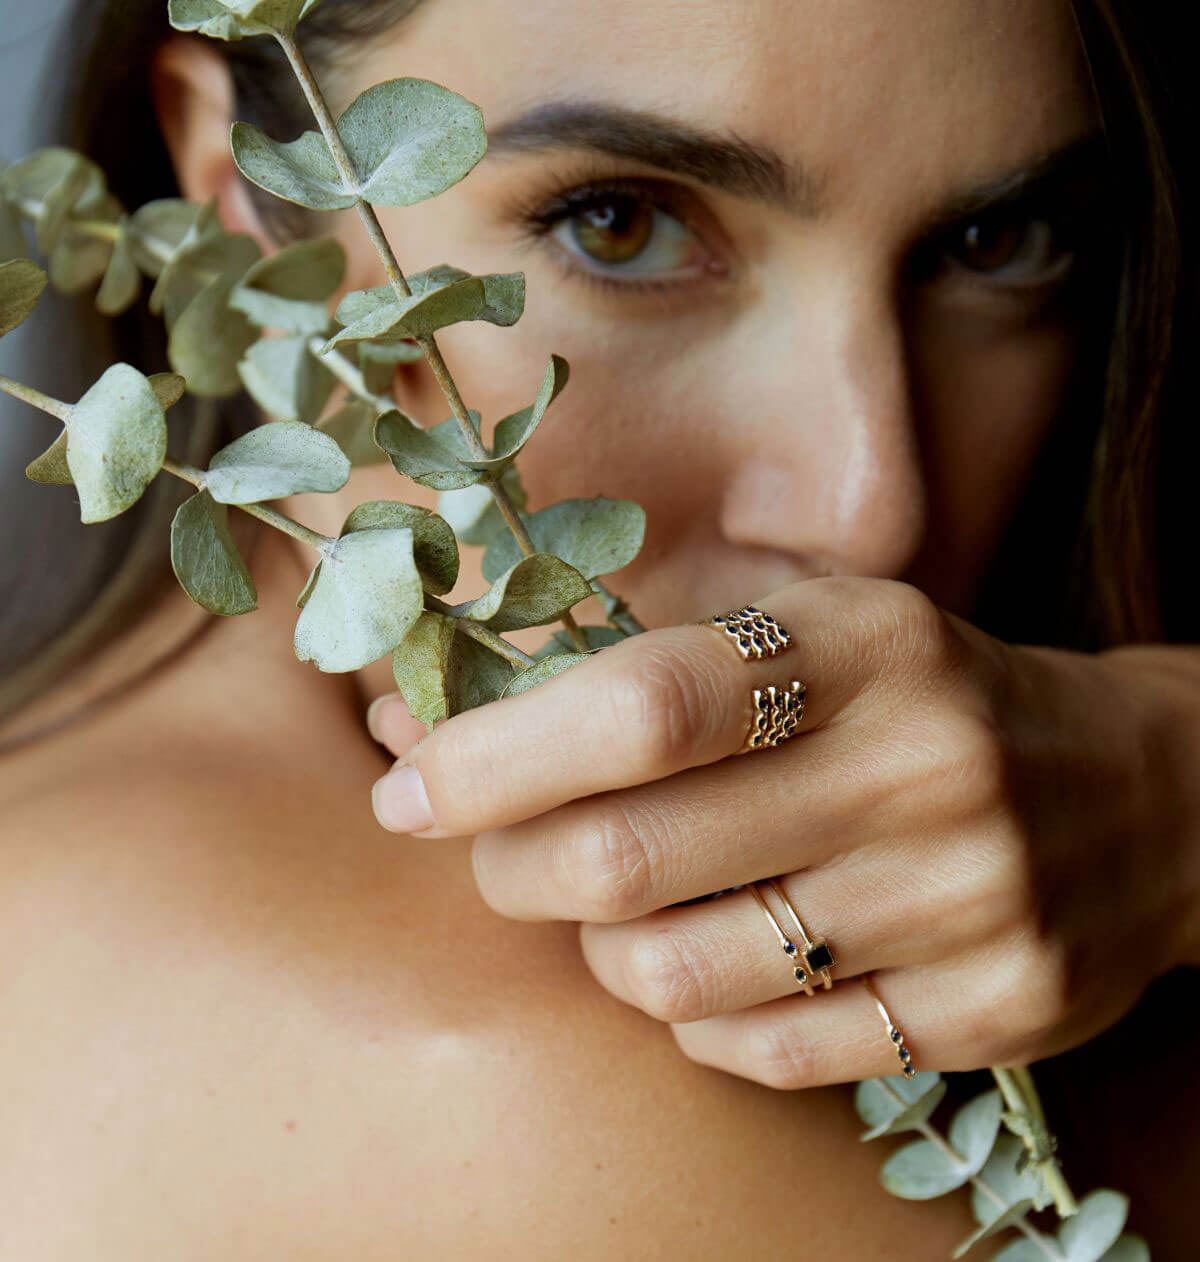 Nikki Reed Poses for Bayou with Love, April 2018 Issue 3